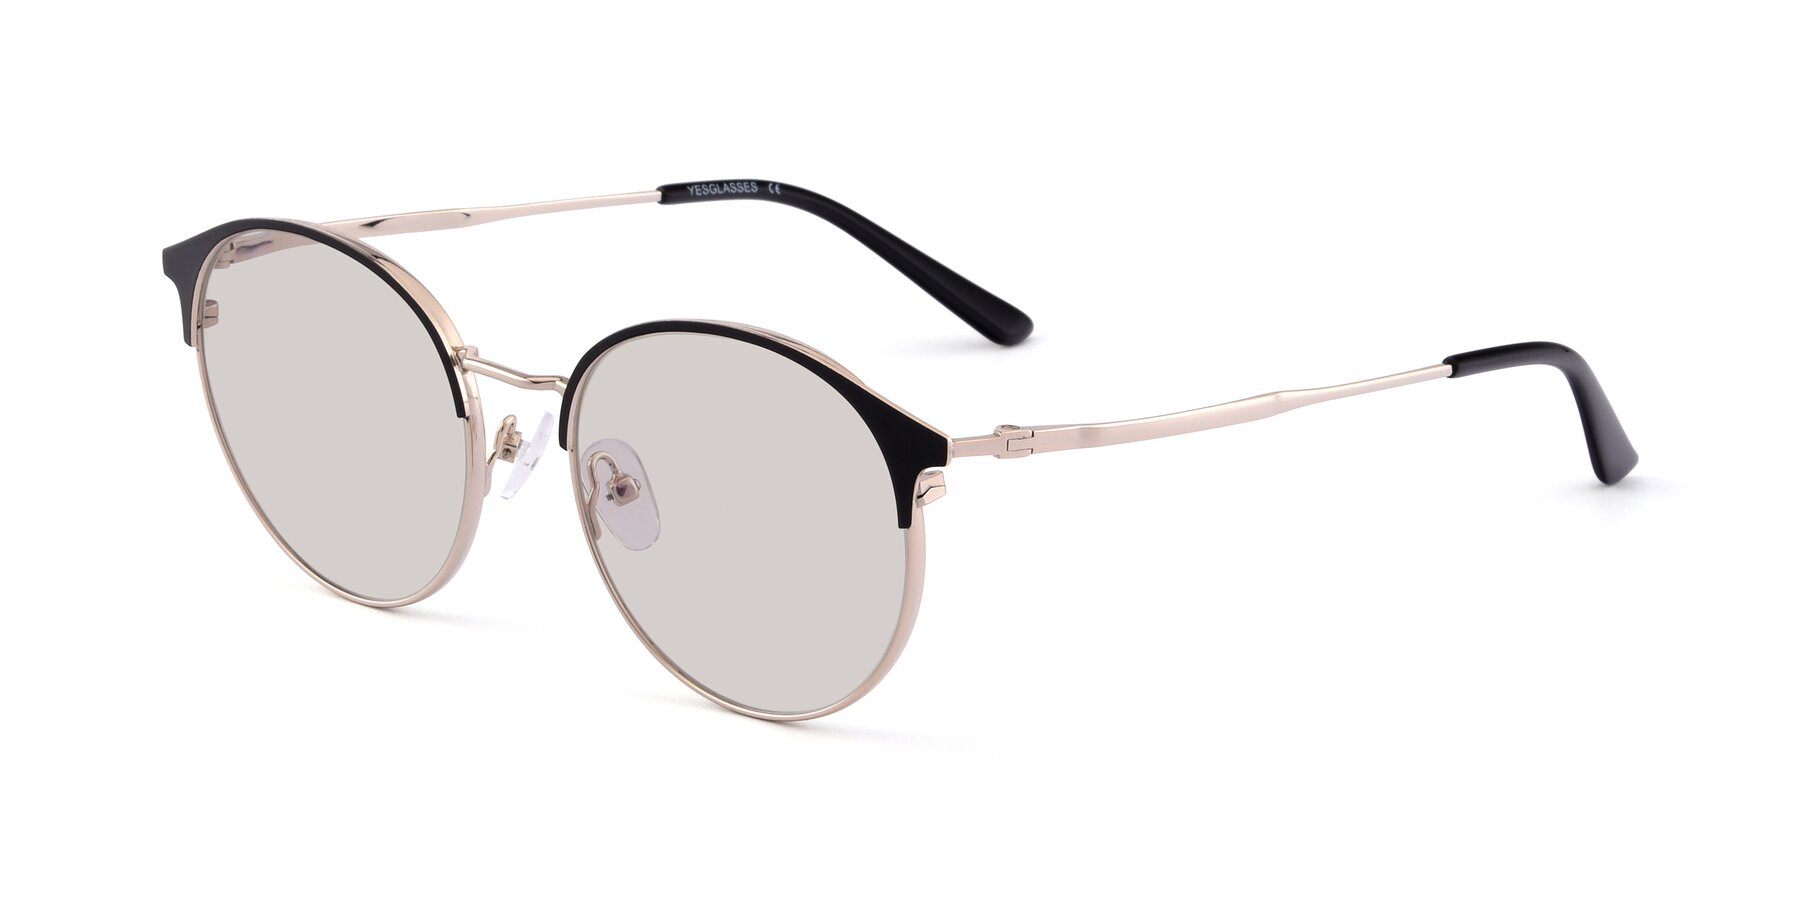 Angle of Berkley in Black-Gold with Light Brown Tinted Lenses